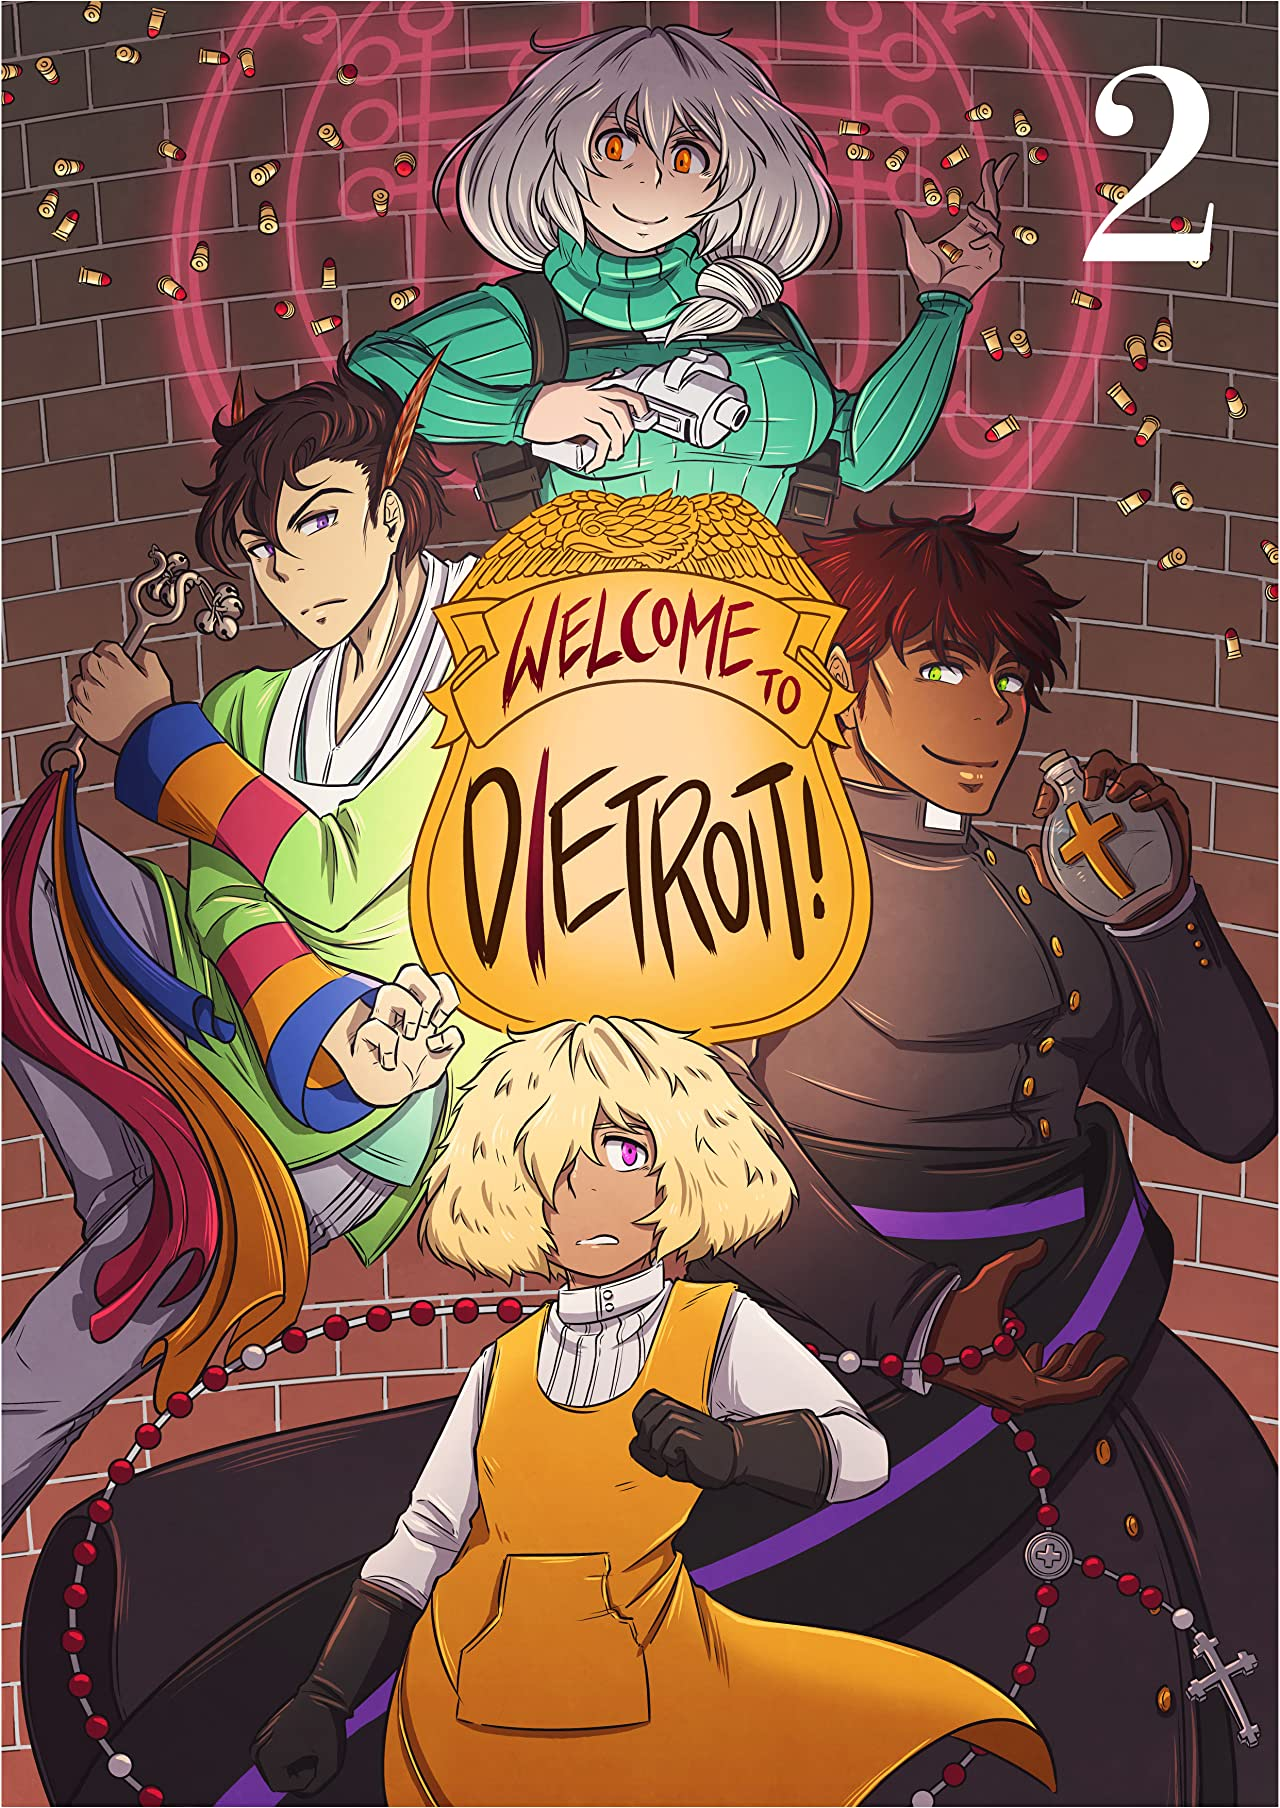 WELCOME TO DIETROIT #2